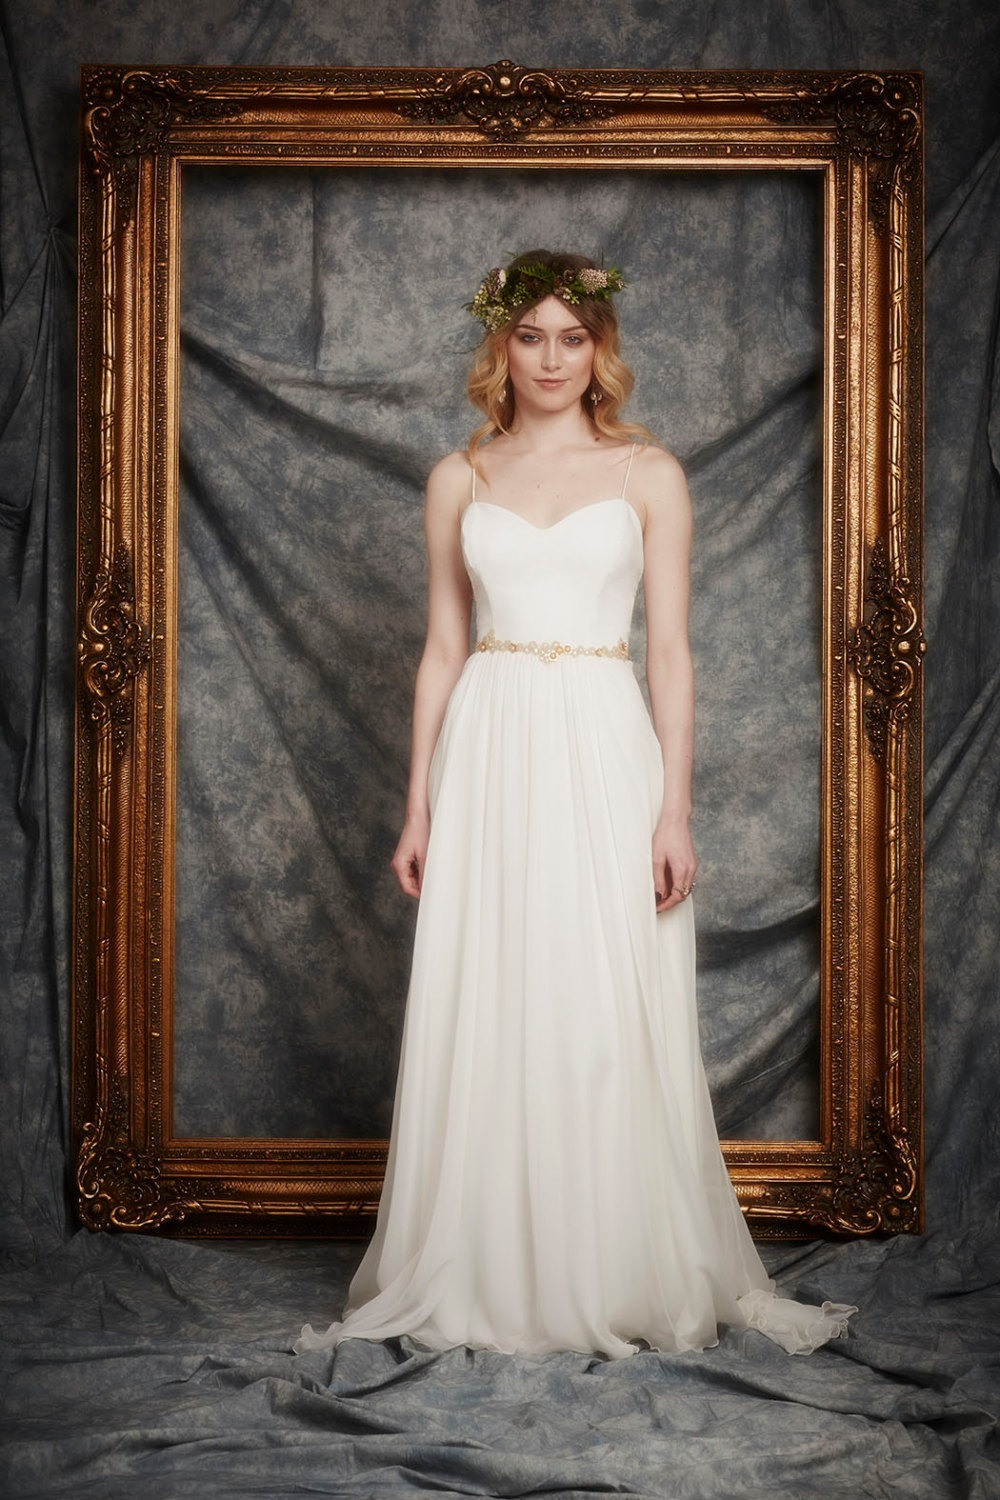 Popular Wedding Skirts And Blouses Buy Cheap Wedding Skirts And Blouses Lots From China Wedding